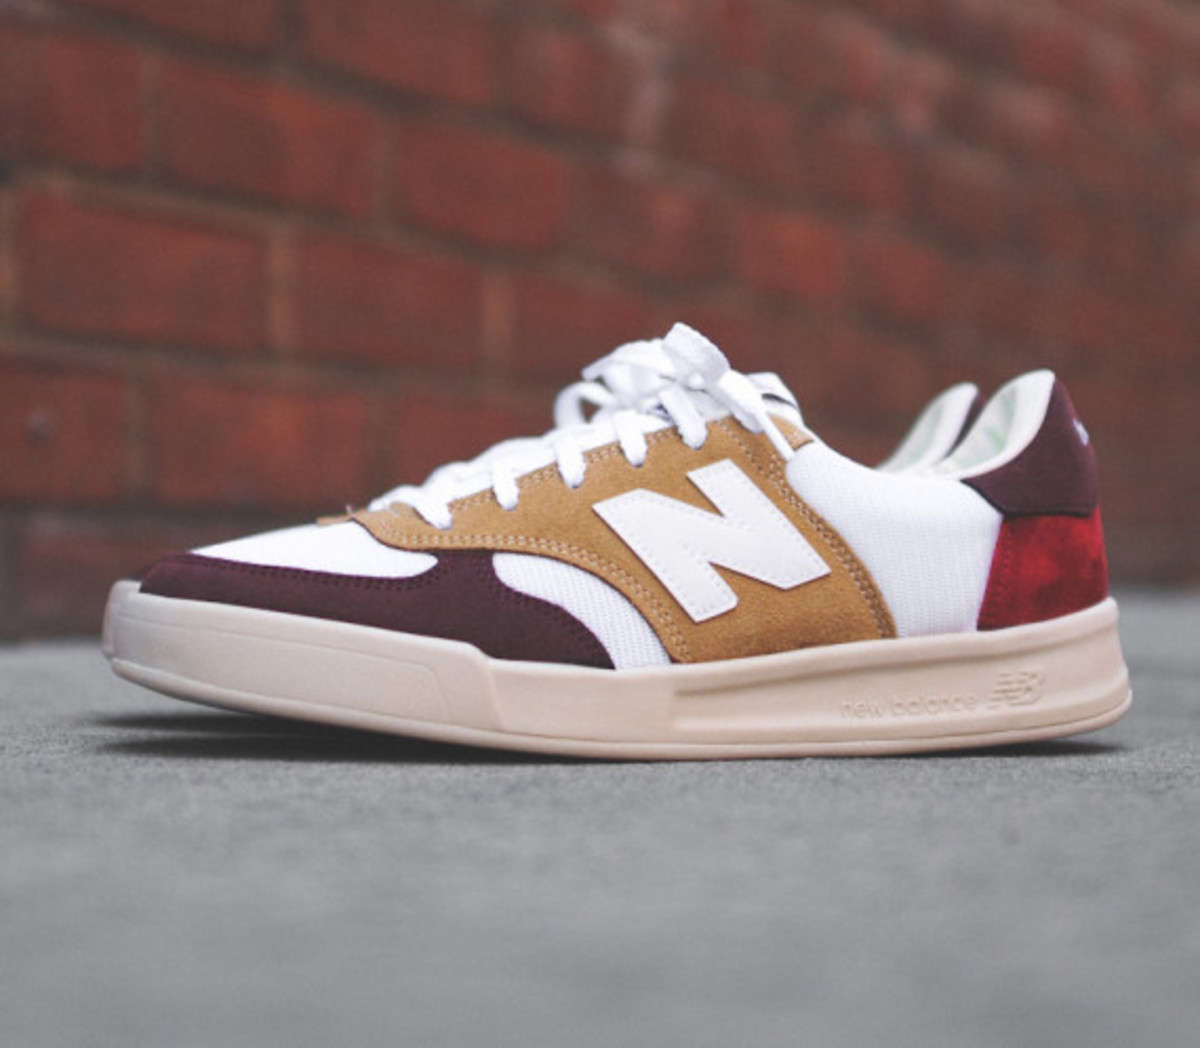 New Balance x 24 Kilates x SneakersNStuff x Hanon x Firmament - CT300 Collection | Available - 11